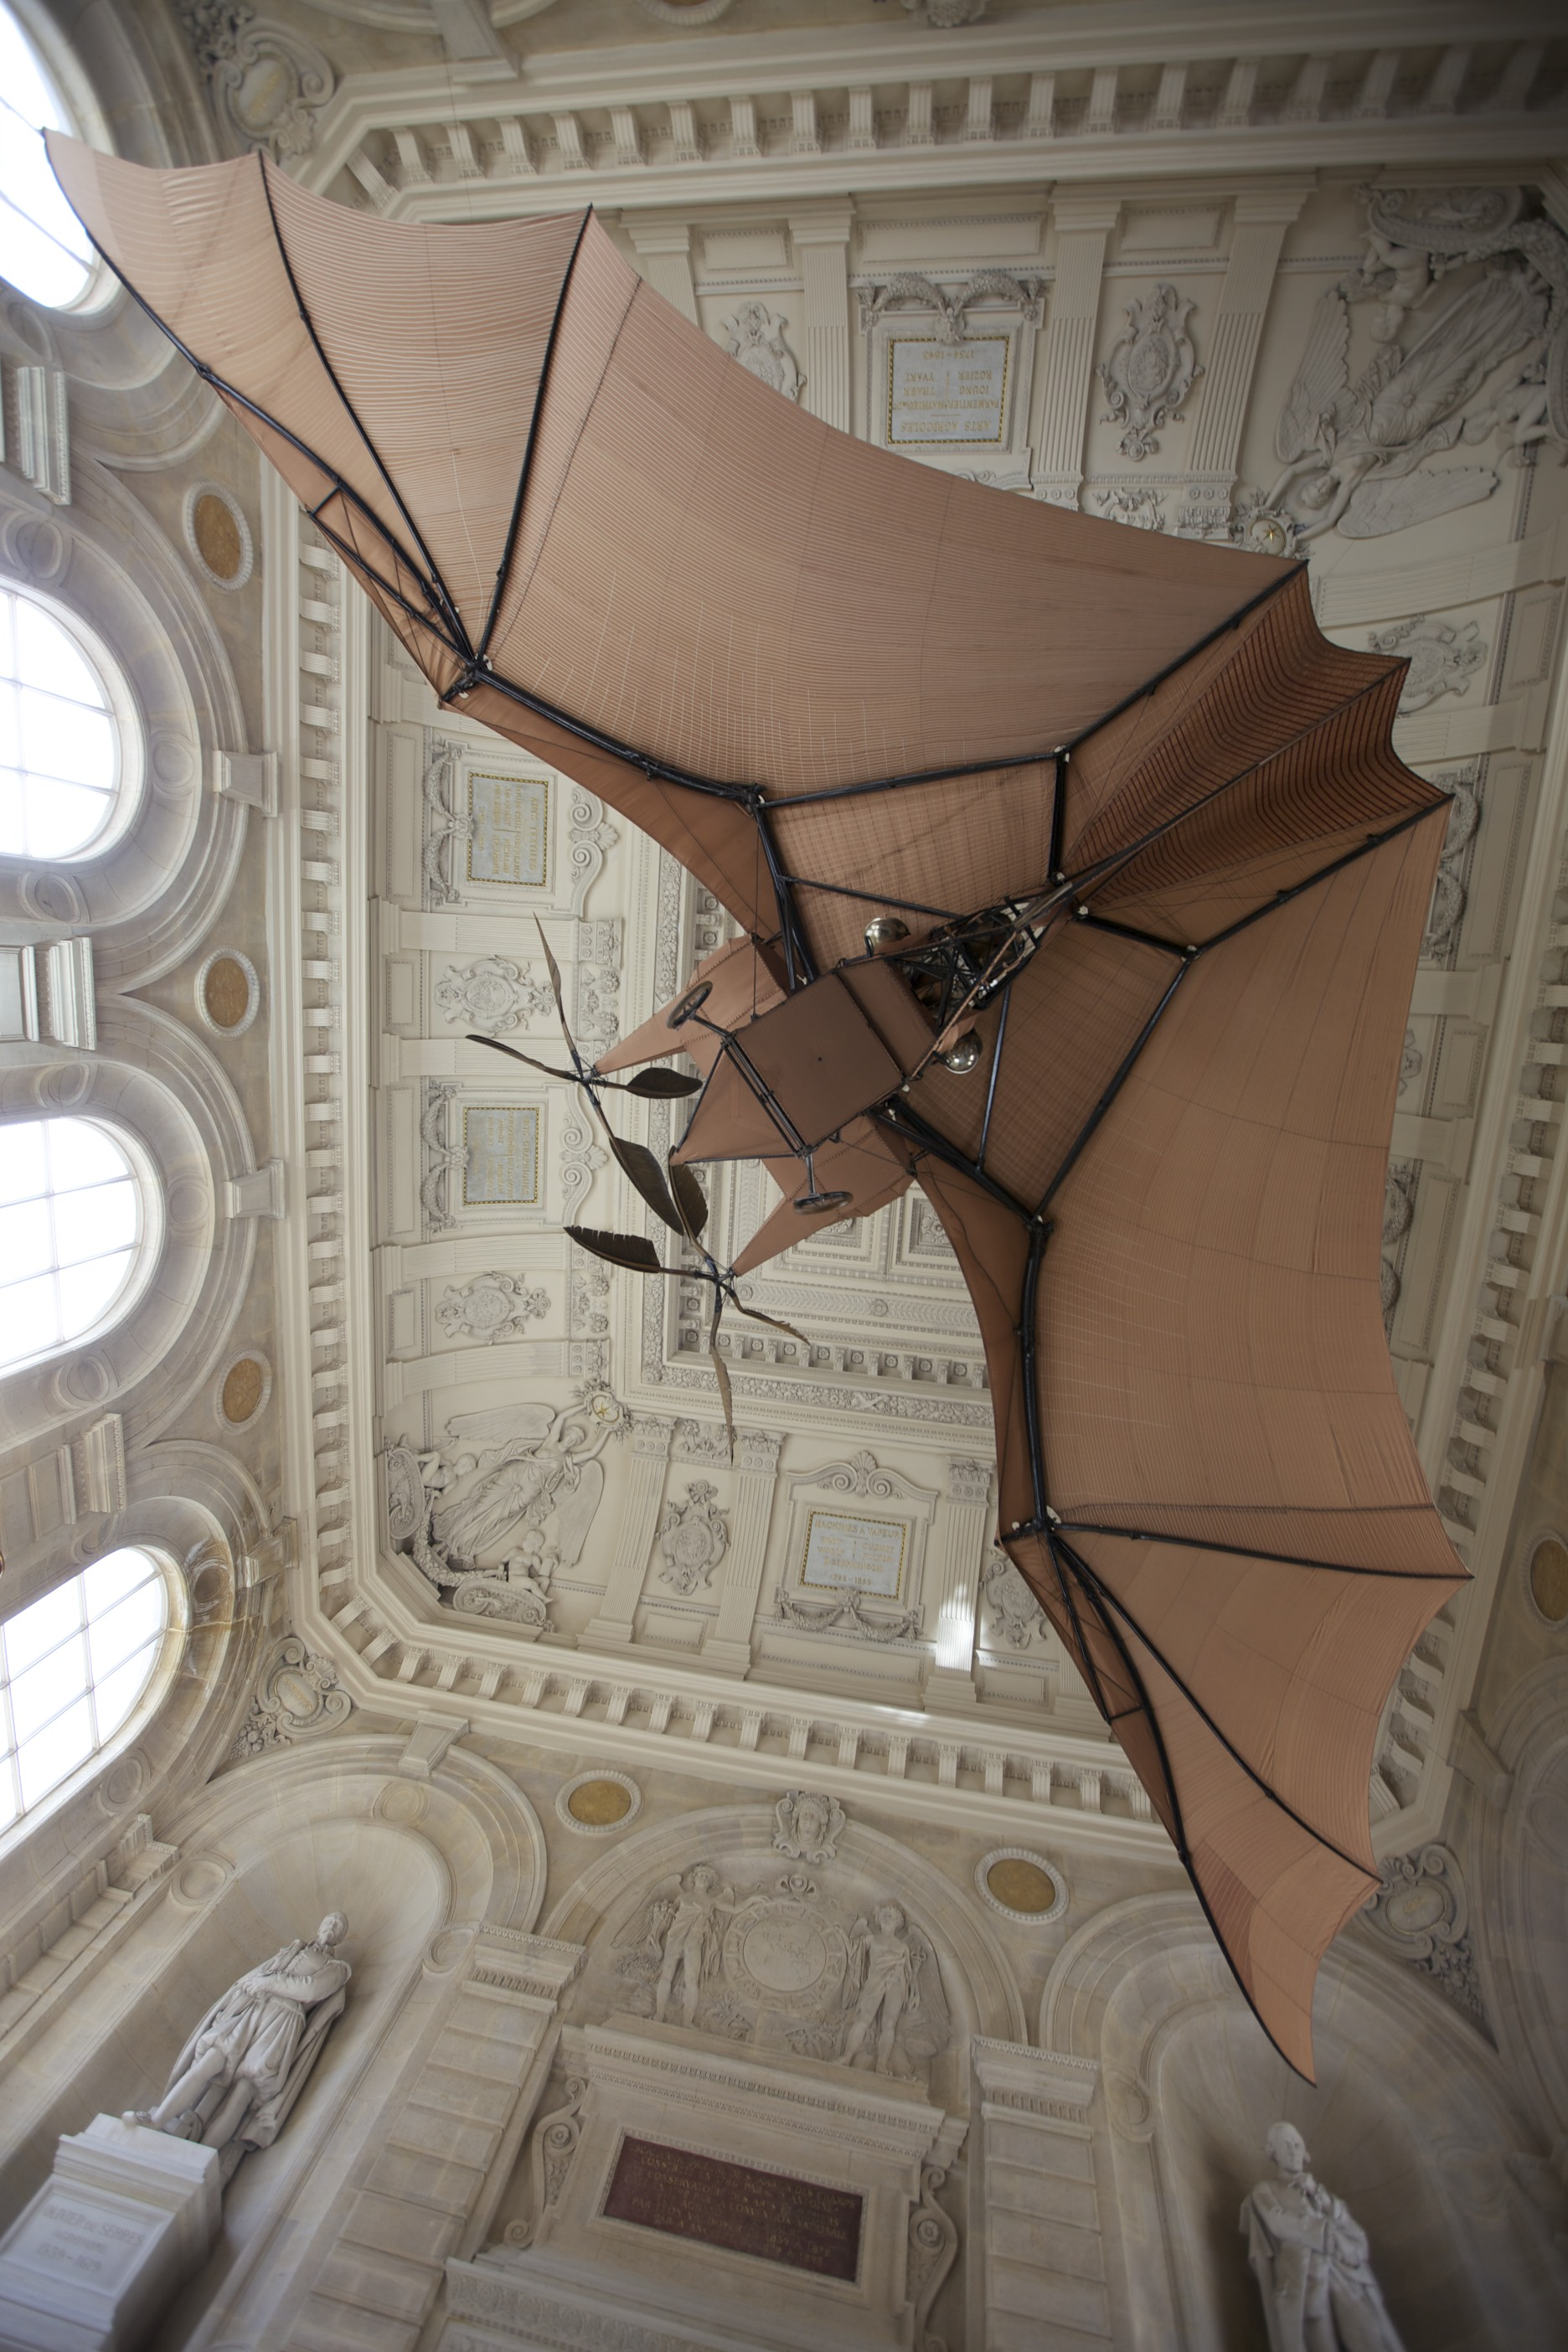 Awesome flying machine at the Musée des Arts et Metiers.